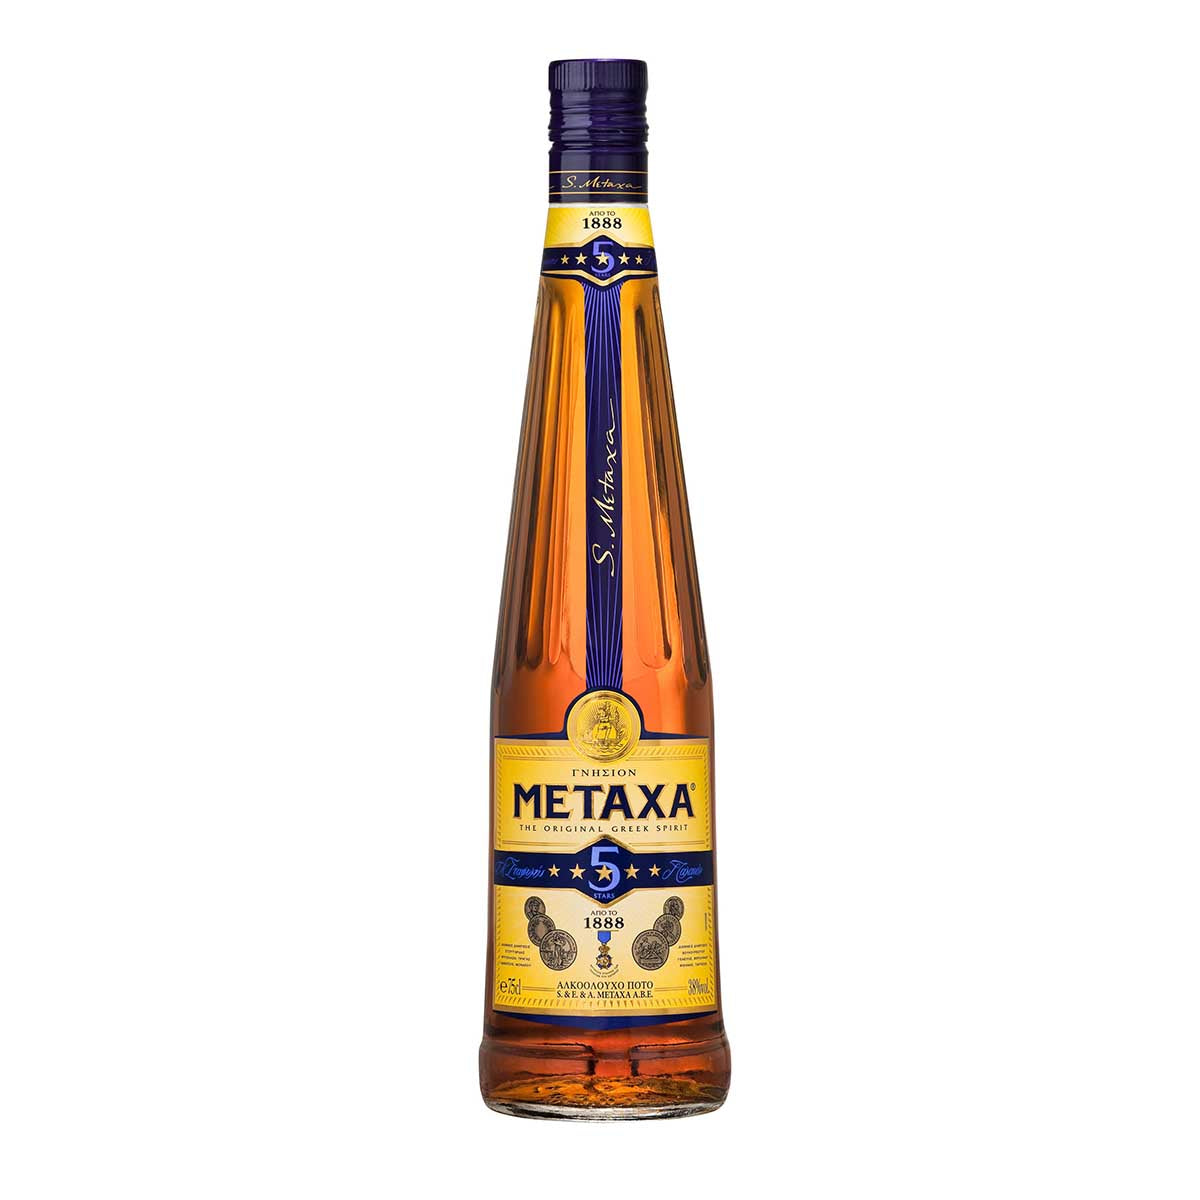 Metaxa_5 star